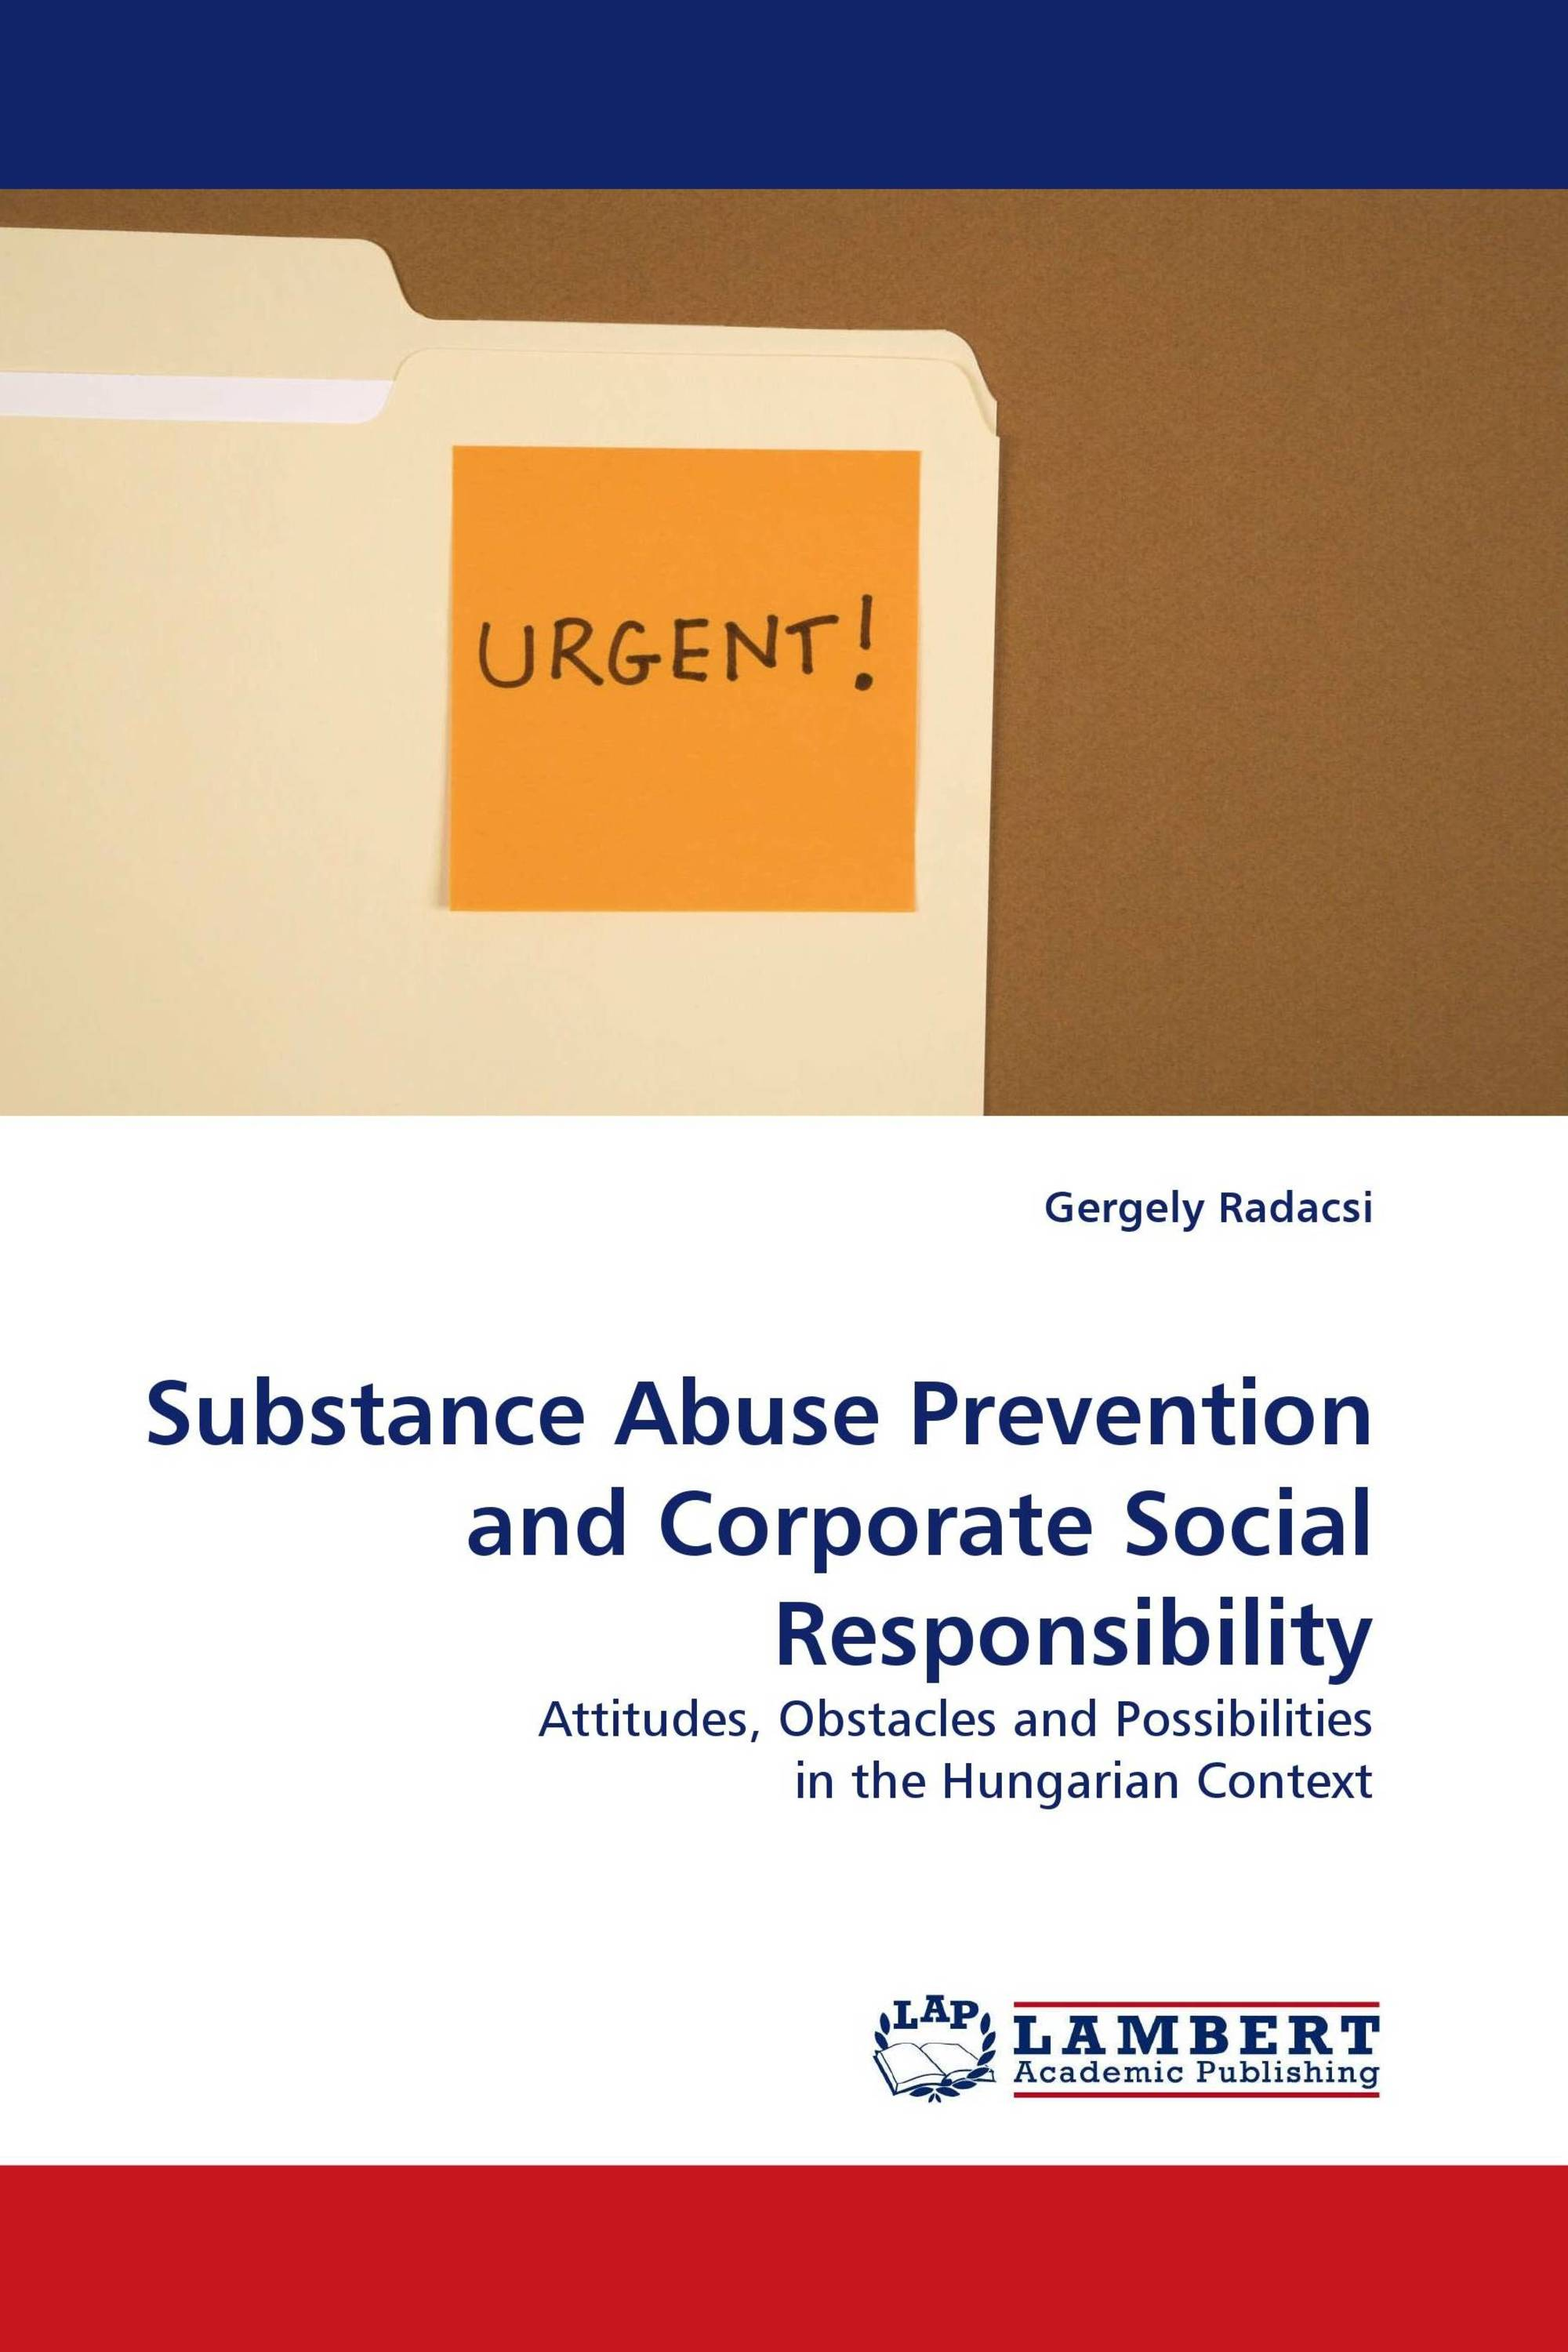 Substance Abuse Prevention and Corporate Social Responsibility